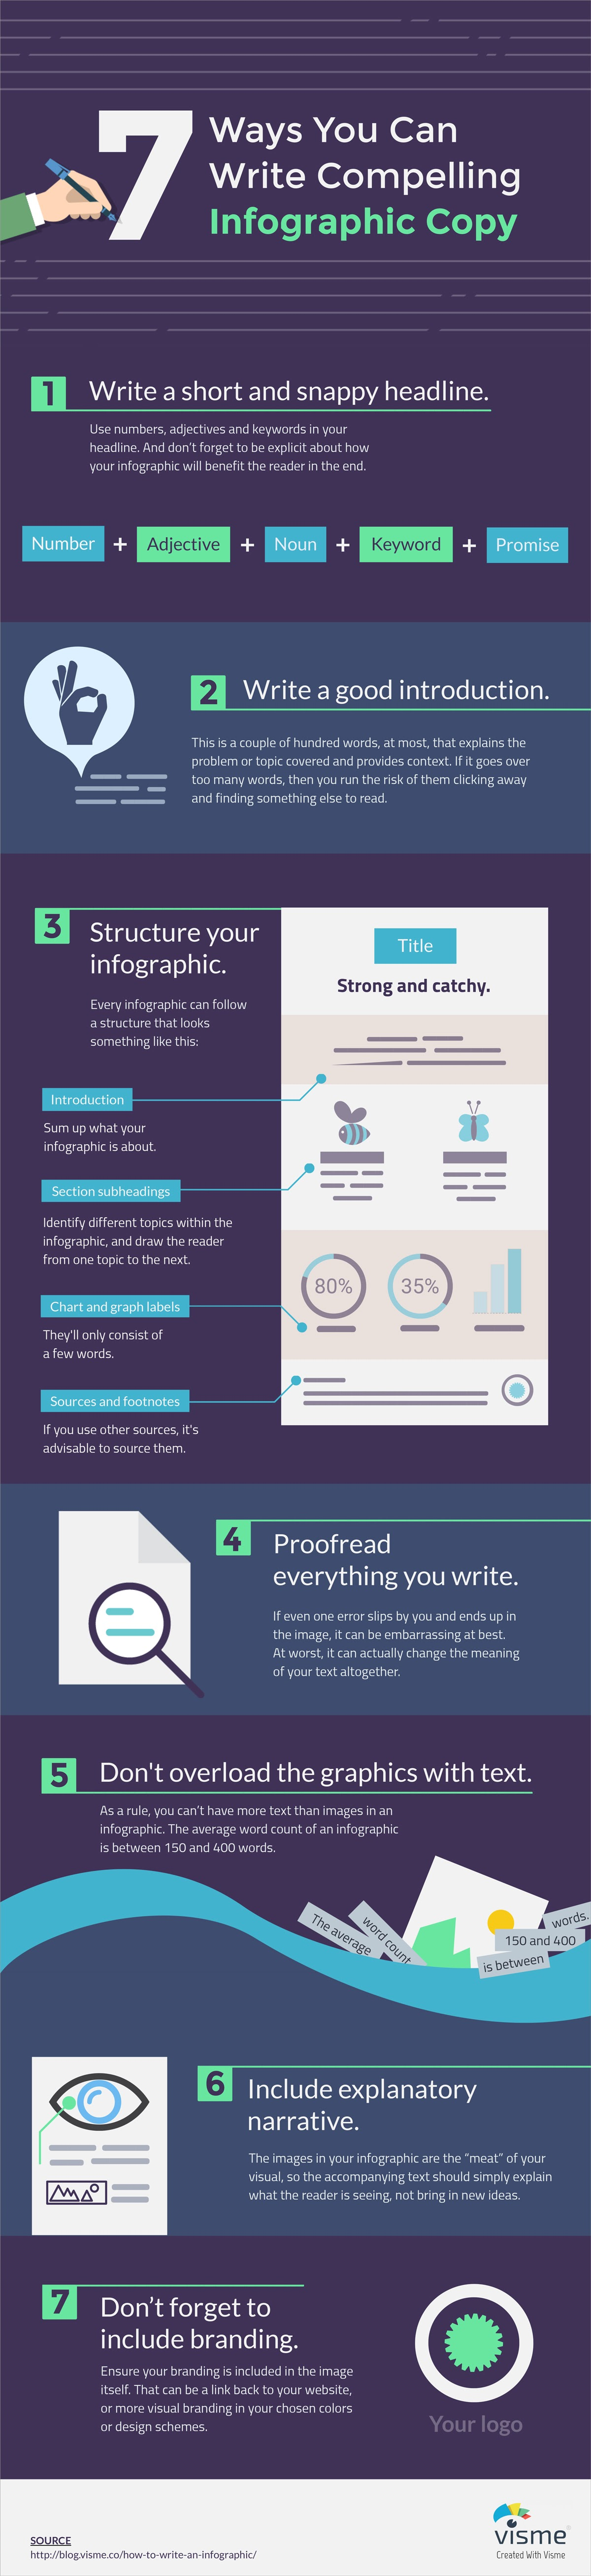 7 Ways You Can Write Compelling Infographic Copy